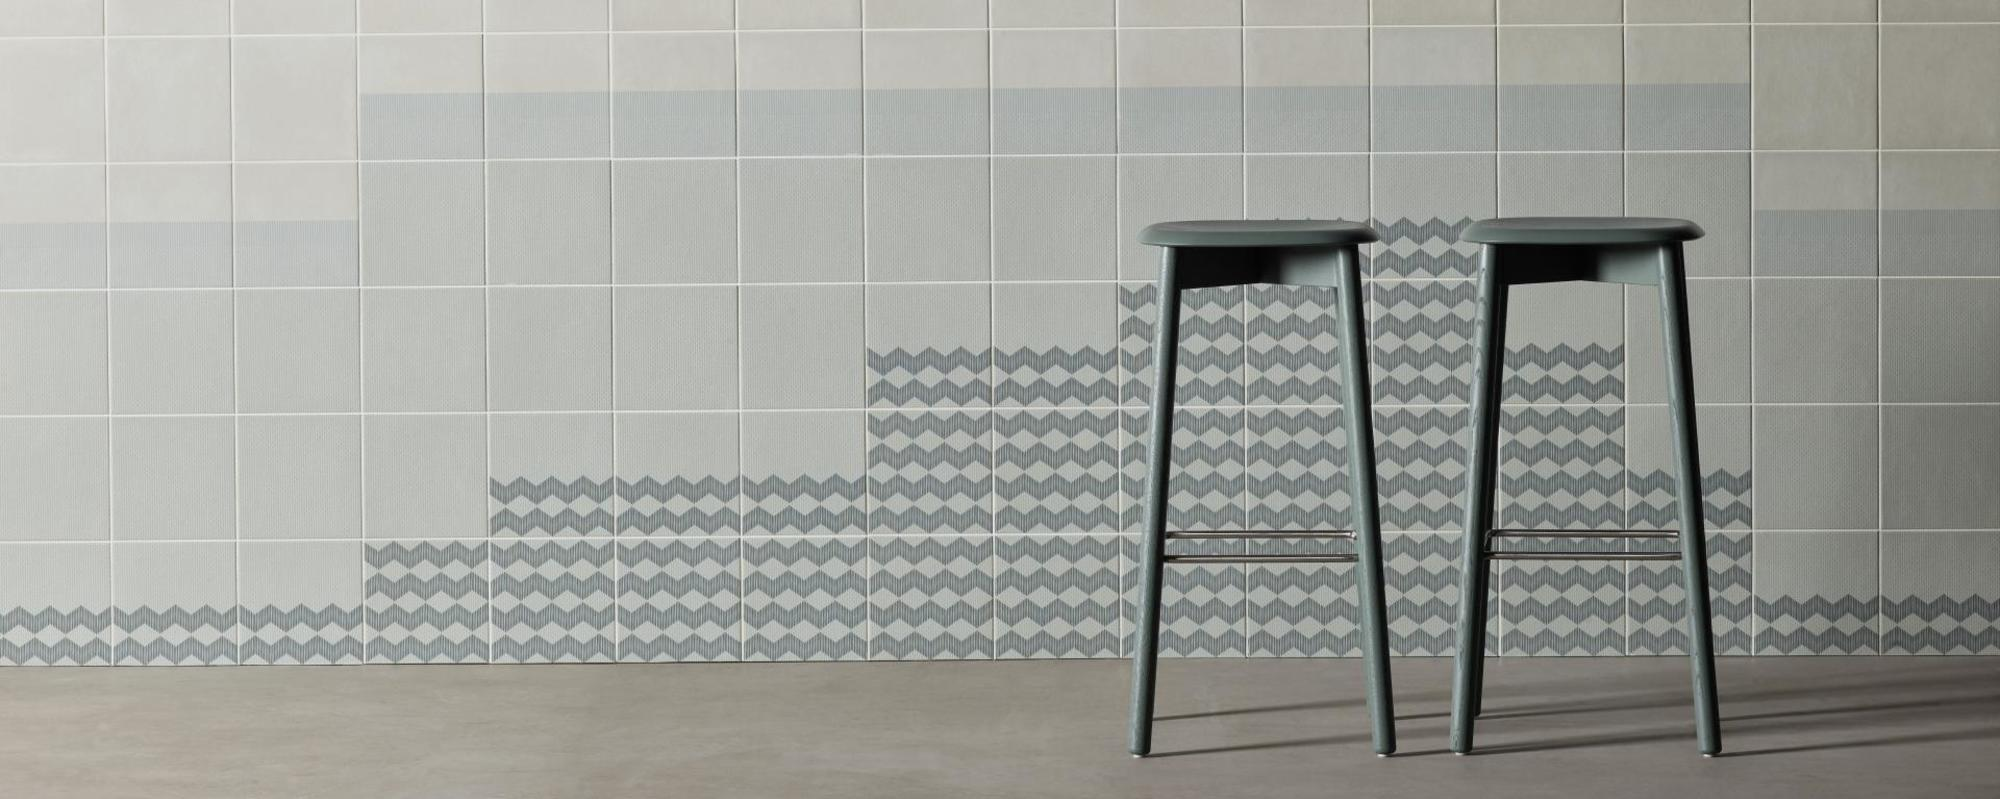 MUTINA ceramiche & design Tape Raw Edges zigzag green + zigzag half green + grainy green + grainy half green + base white + cobble half blue